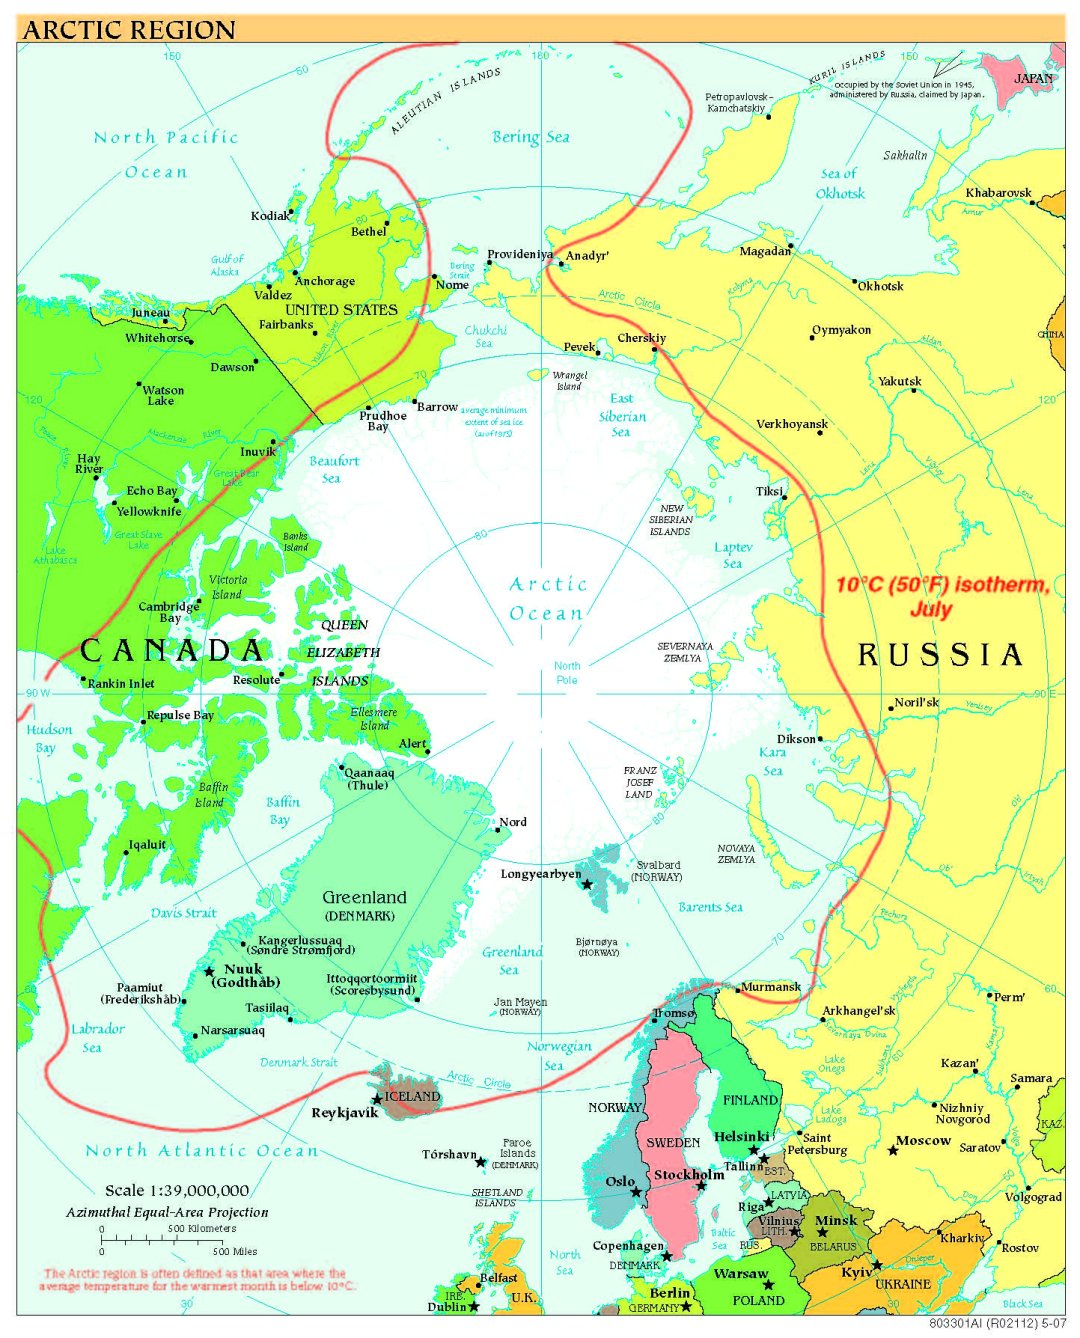 Free high resolution map of the arctic jpg 336k gumiabroncs Image collections